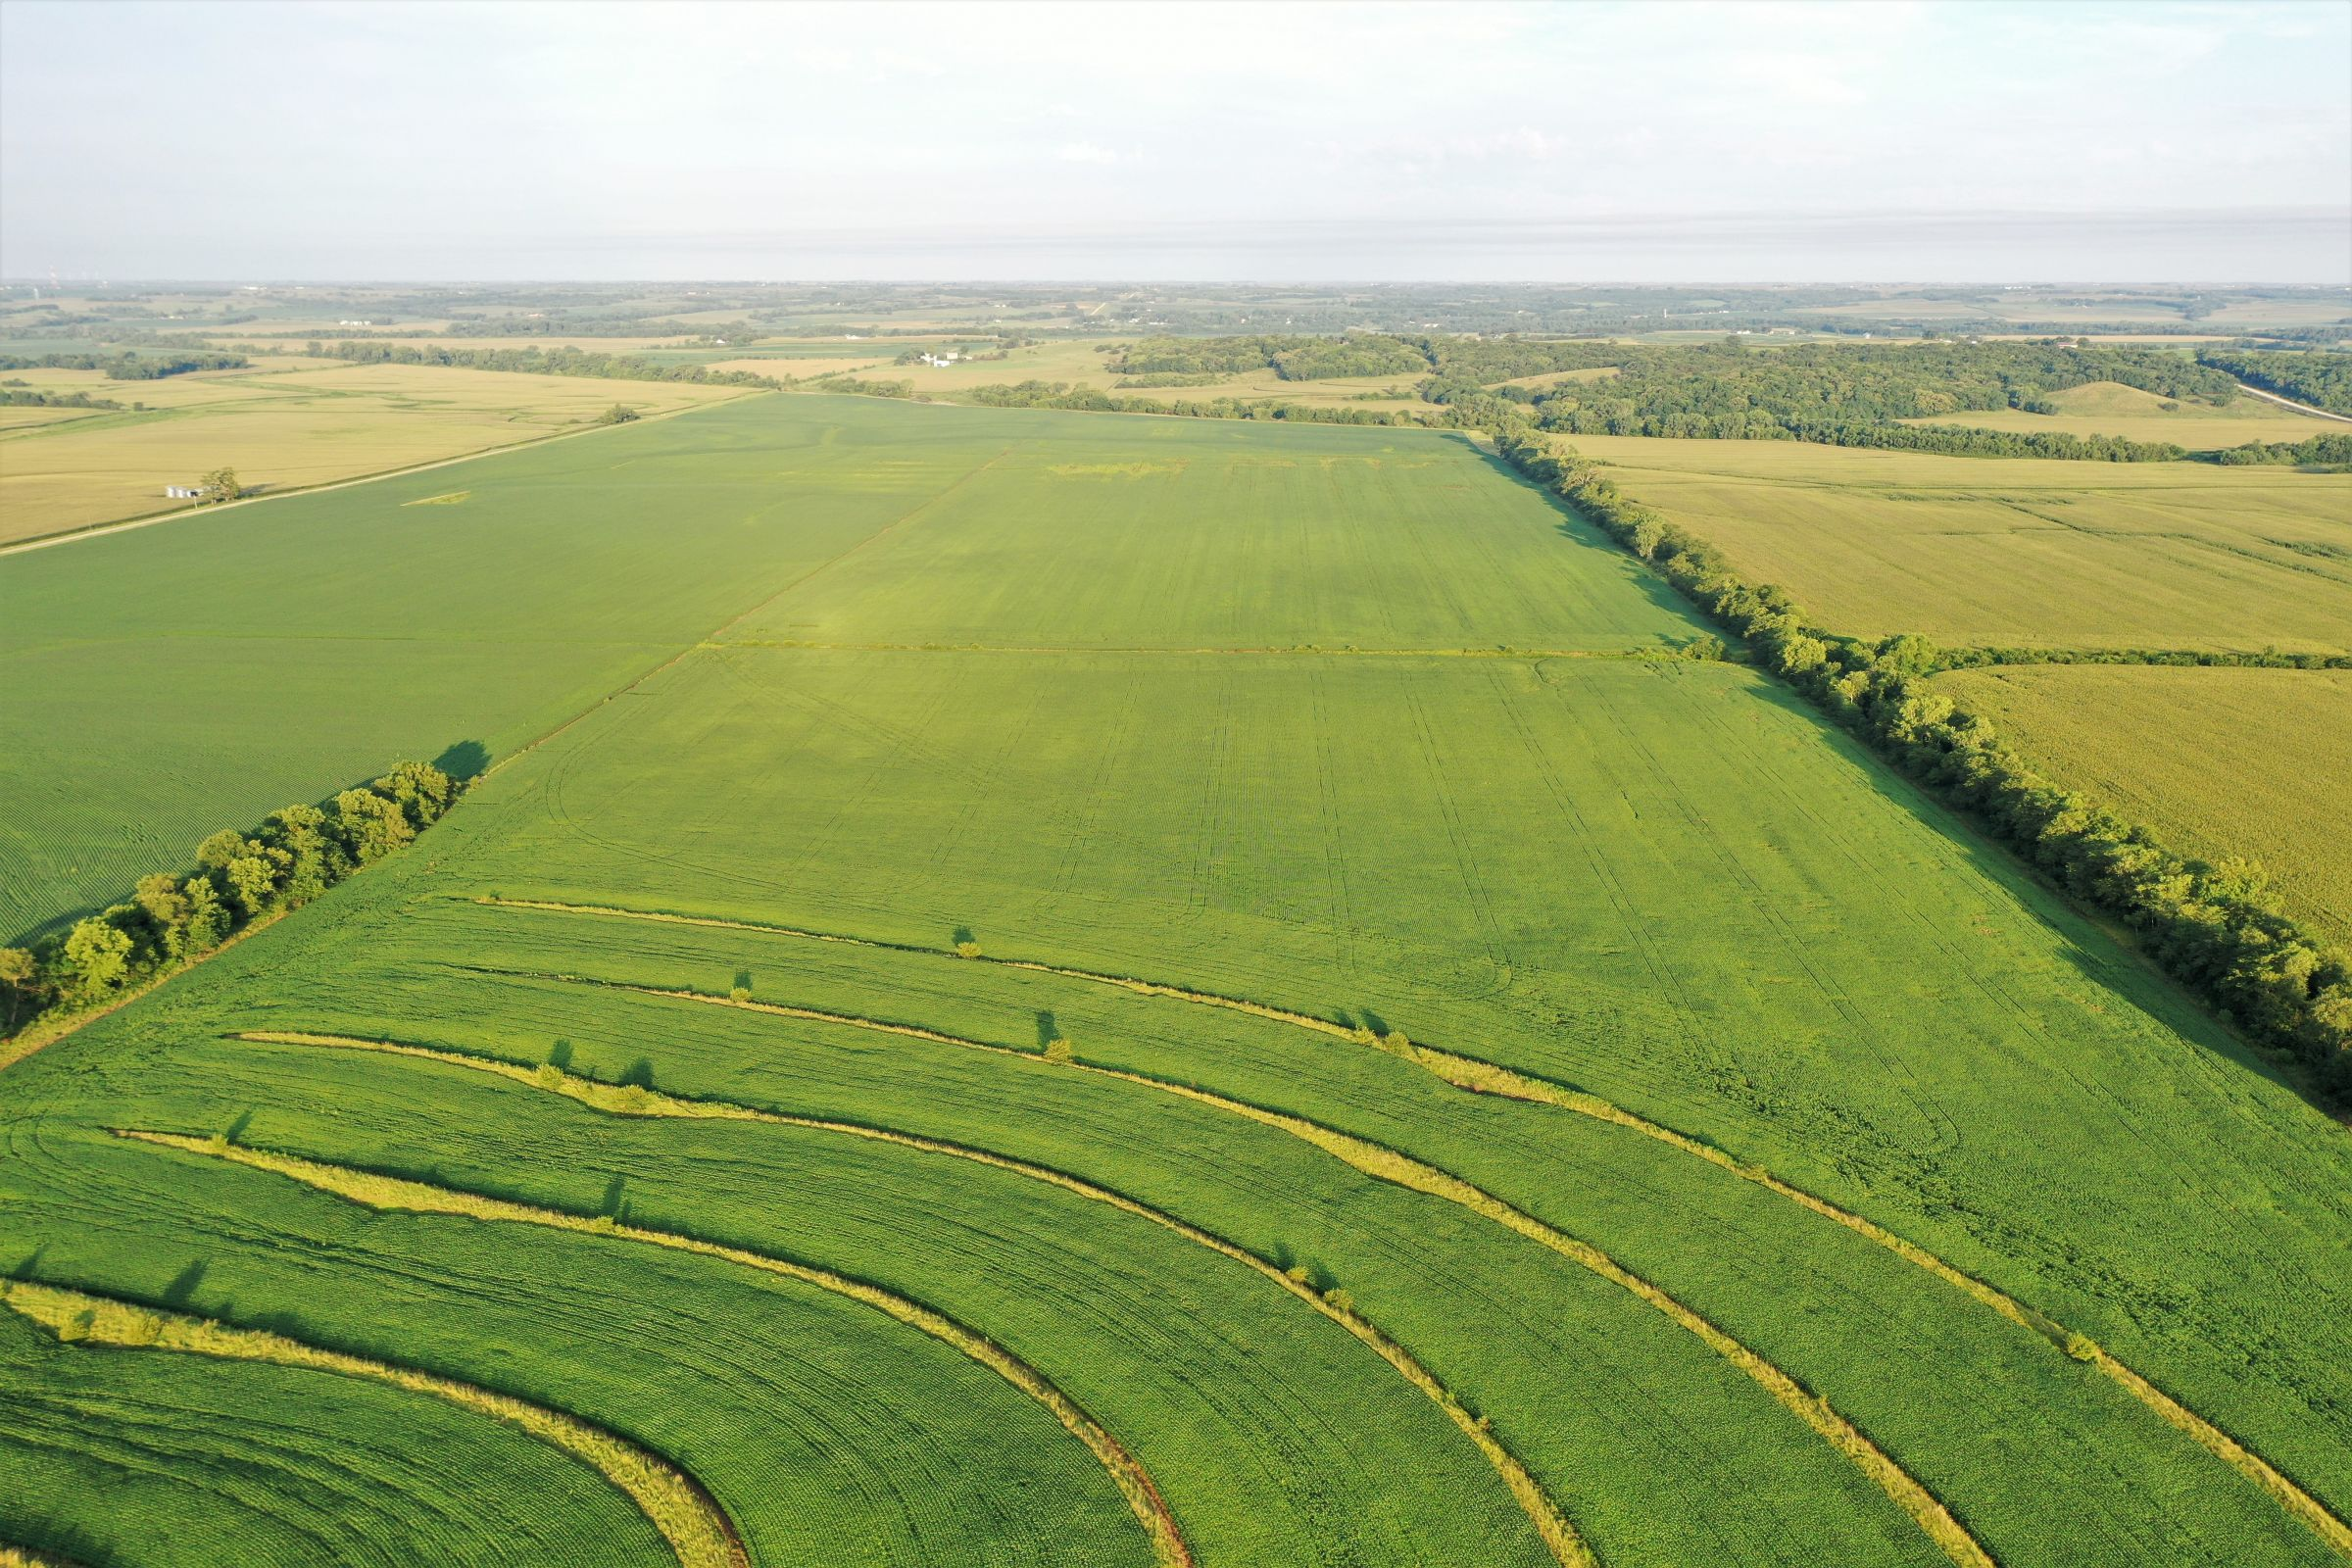 land-page-county-iowa-160-acres-listing-number-15117-3-2020-08-13-162606.jpg